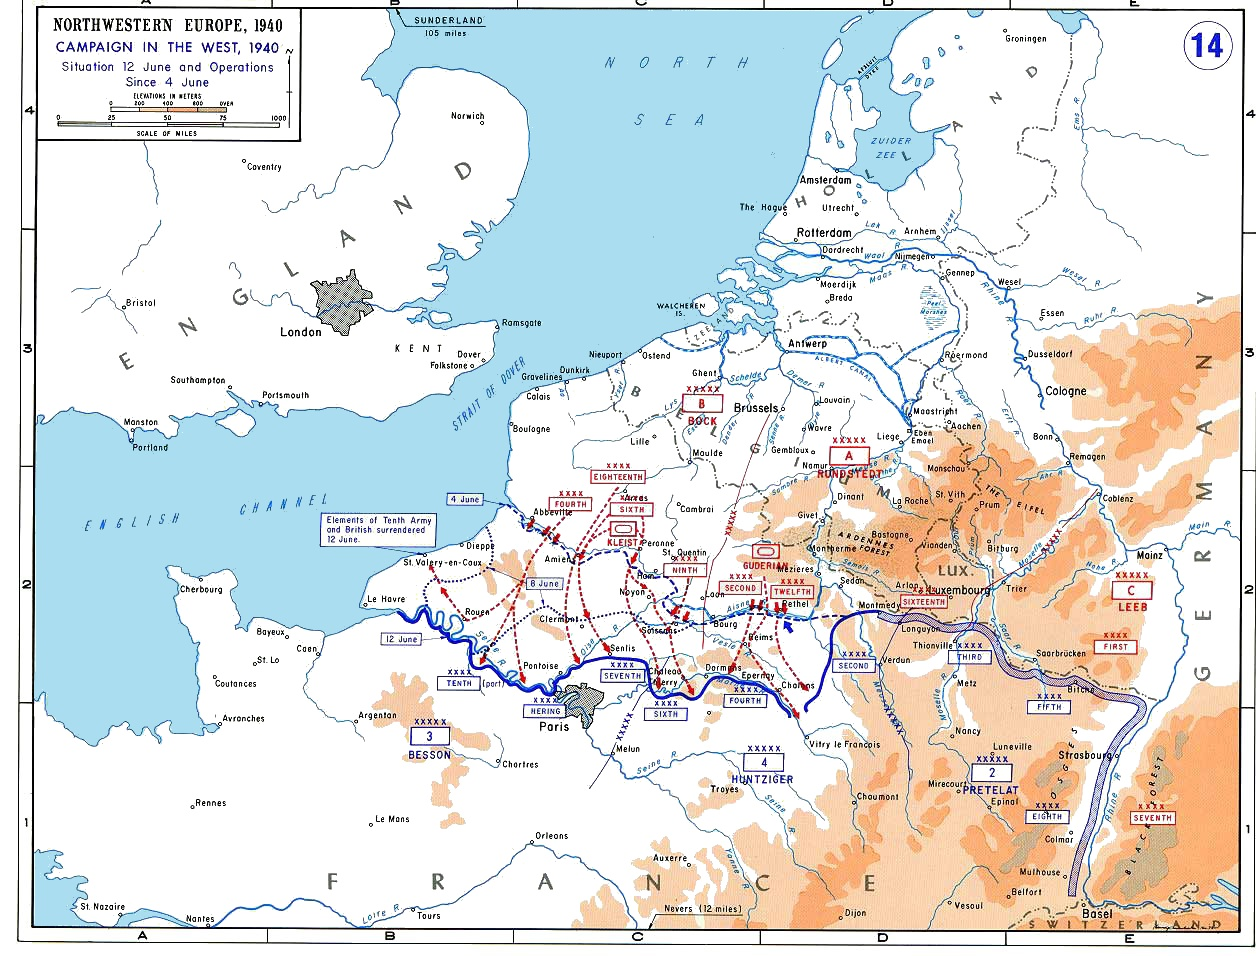 4June-12June1940-Fall Rot.jpg